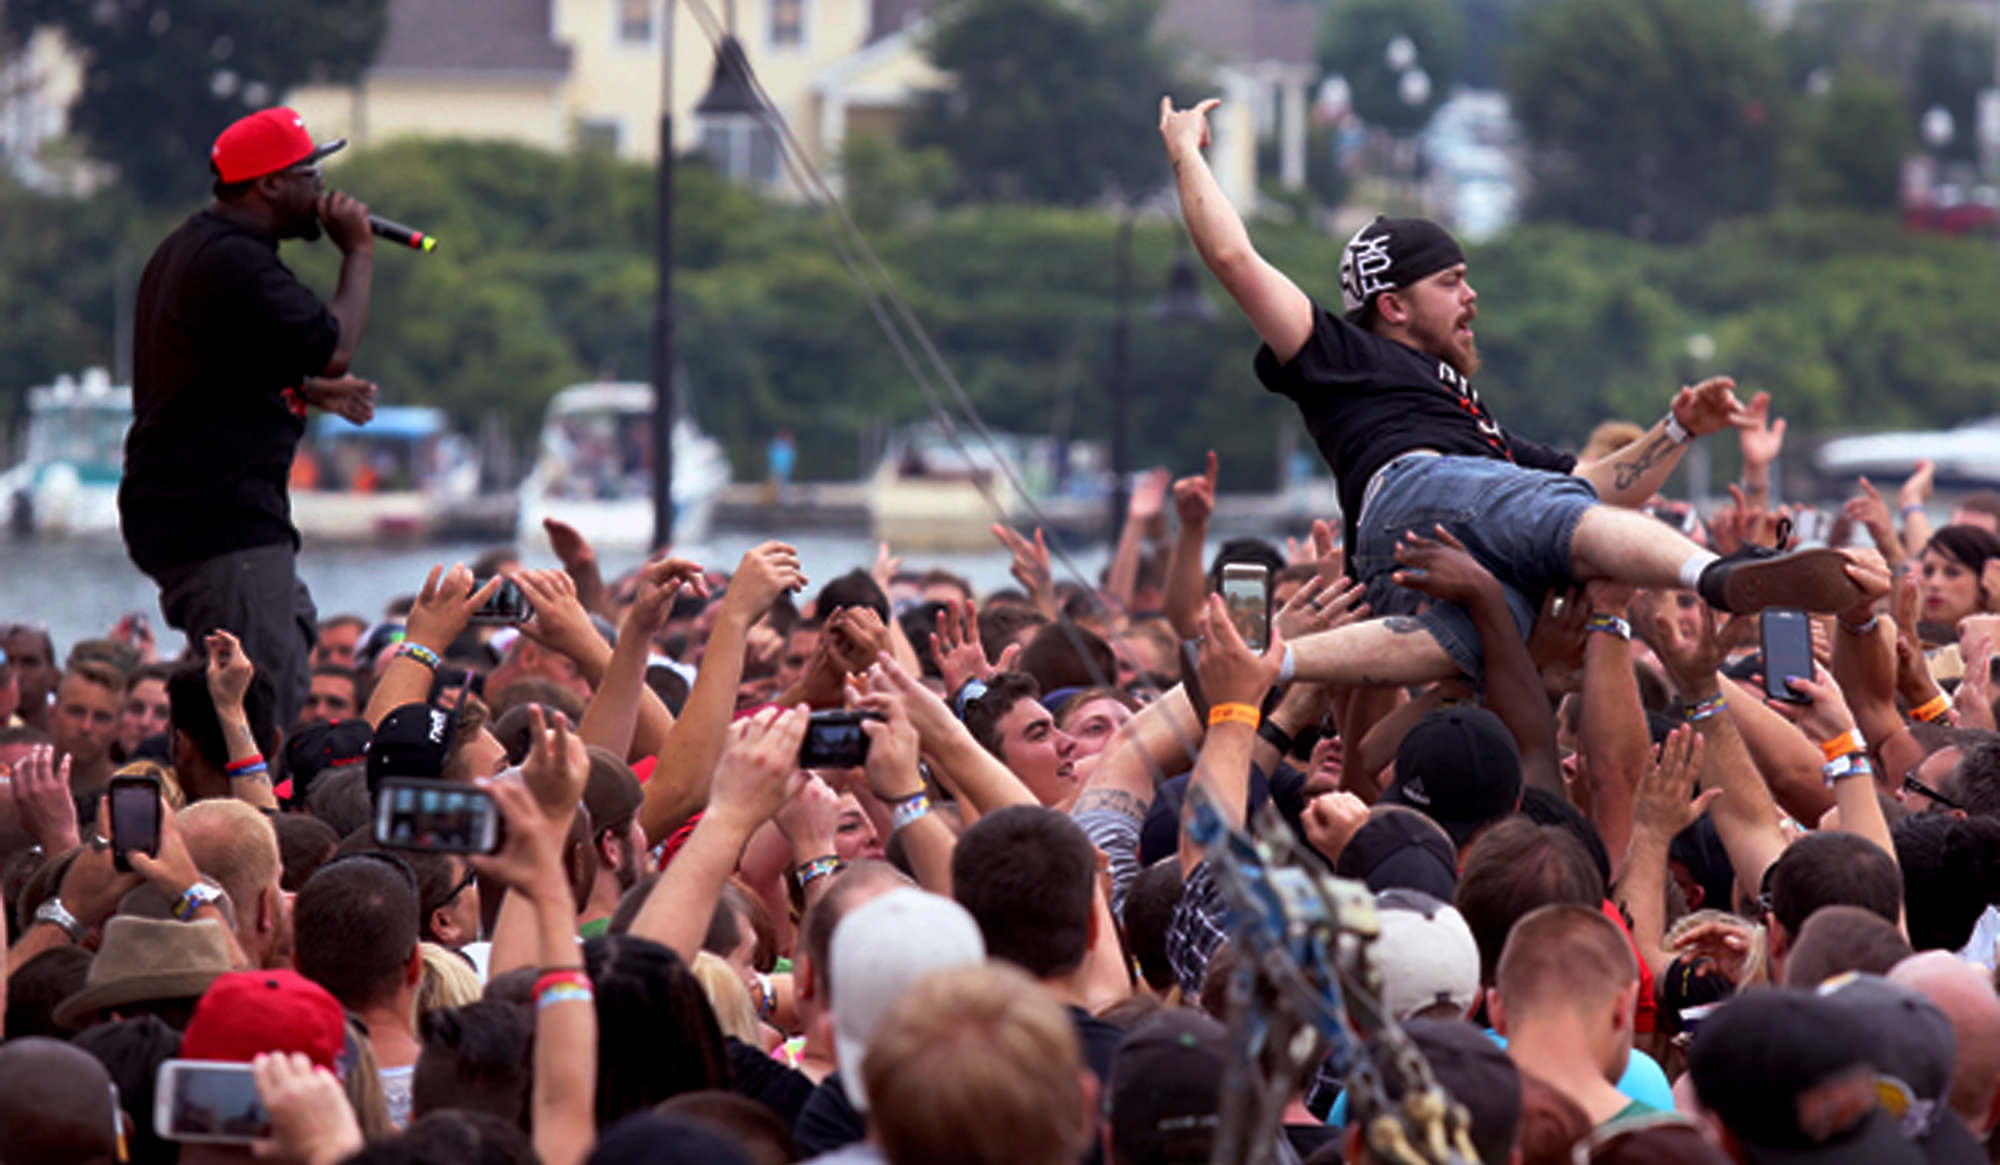 Roverfest_Crowd_Surf_2000_x_1165